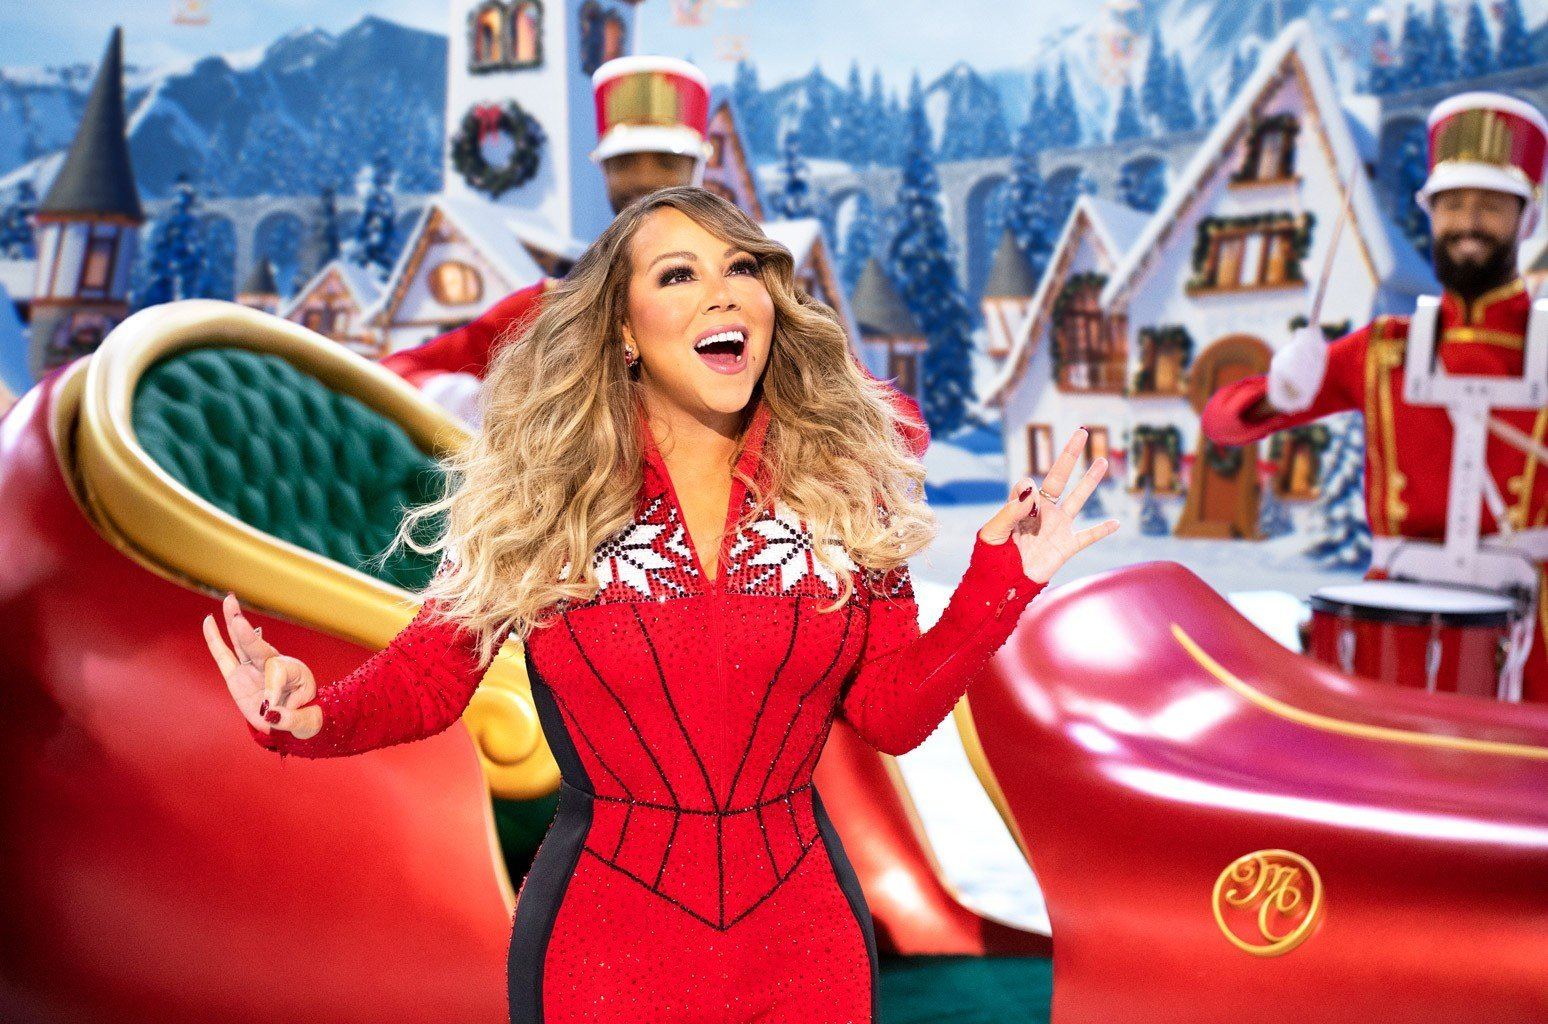 Mariah Carey's RV Is Totally Decked Out for a Festive Road Trip